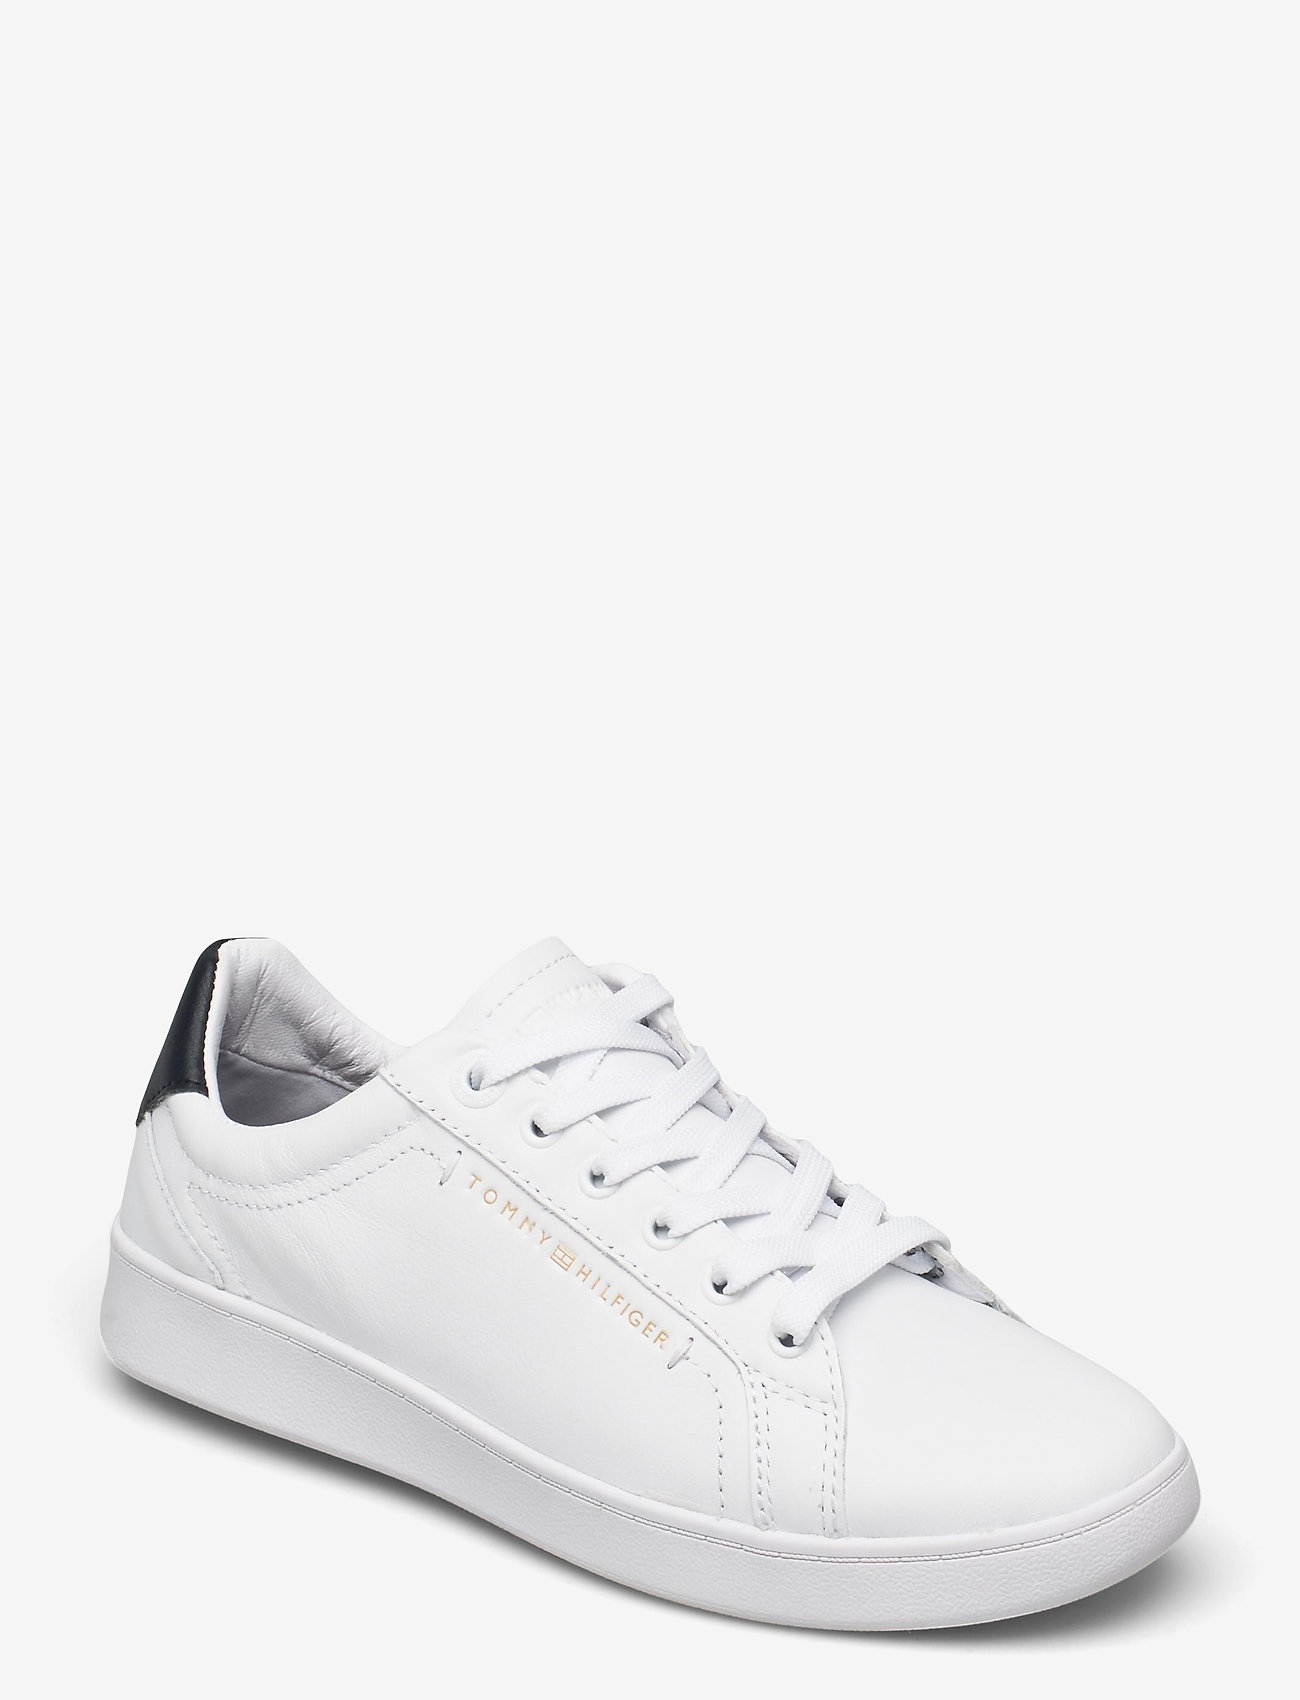 Tommy Hilfiger - PREMIUM COURT SNEAKER - low top sneakers - desert sky - 0